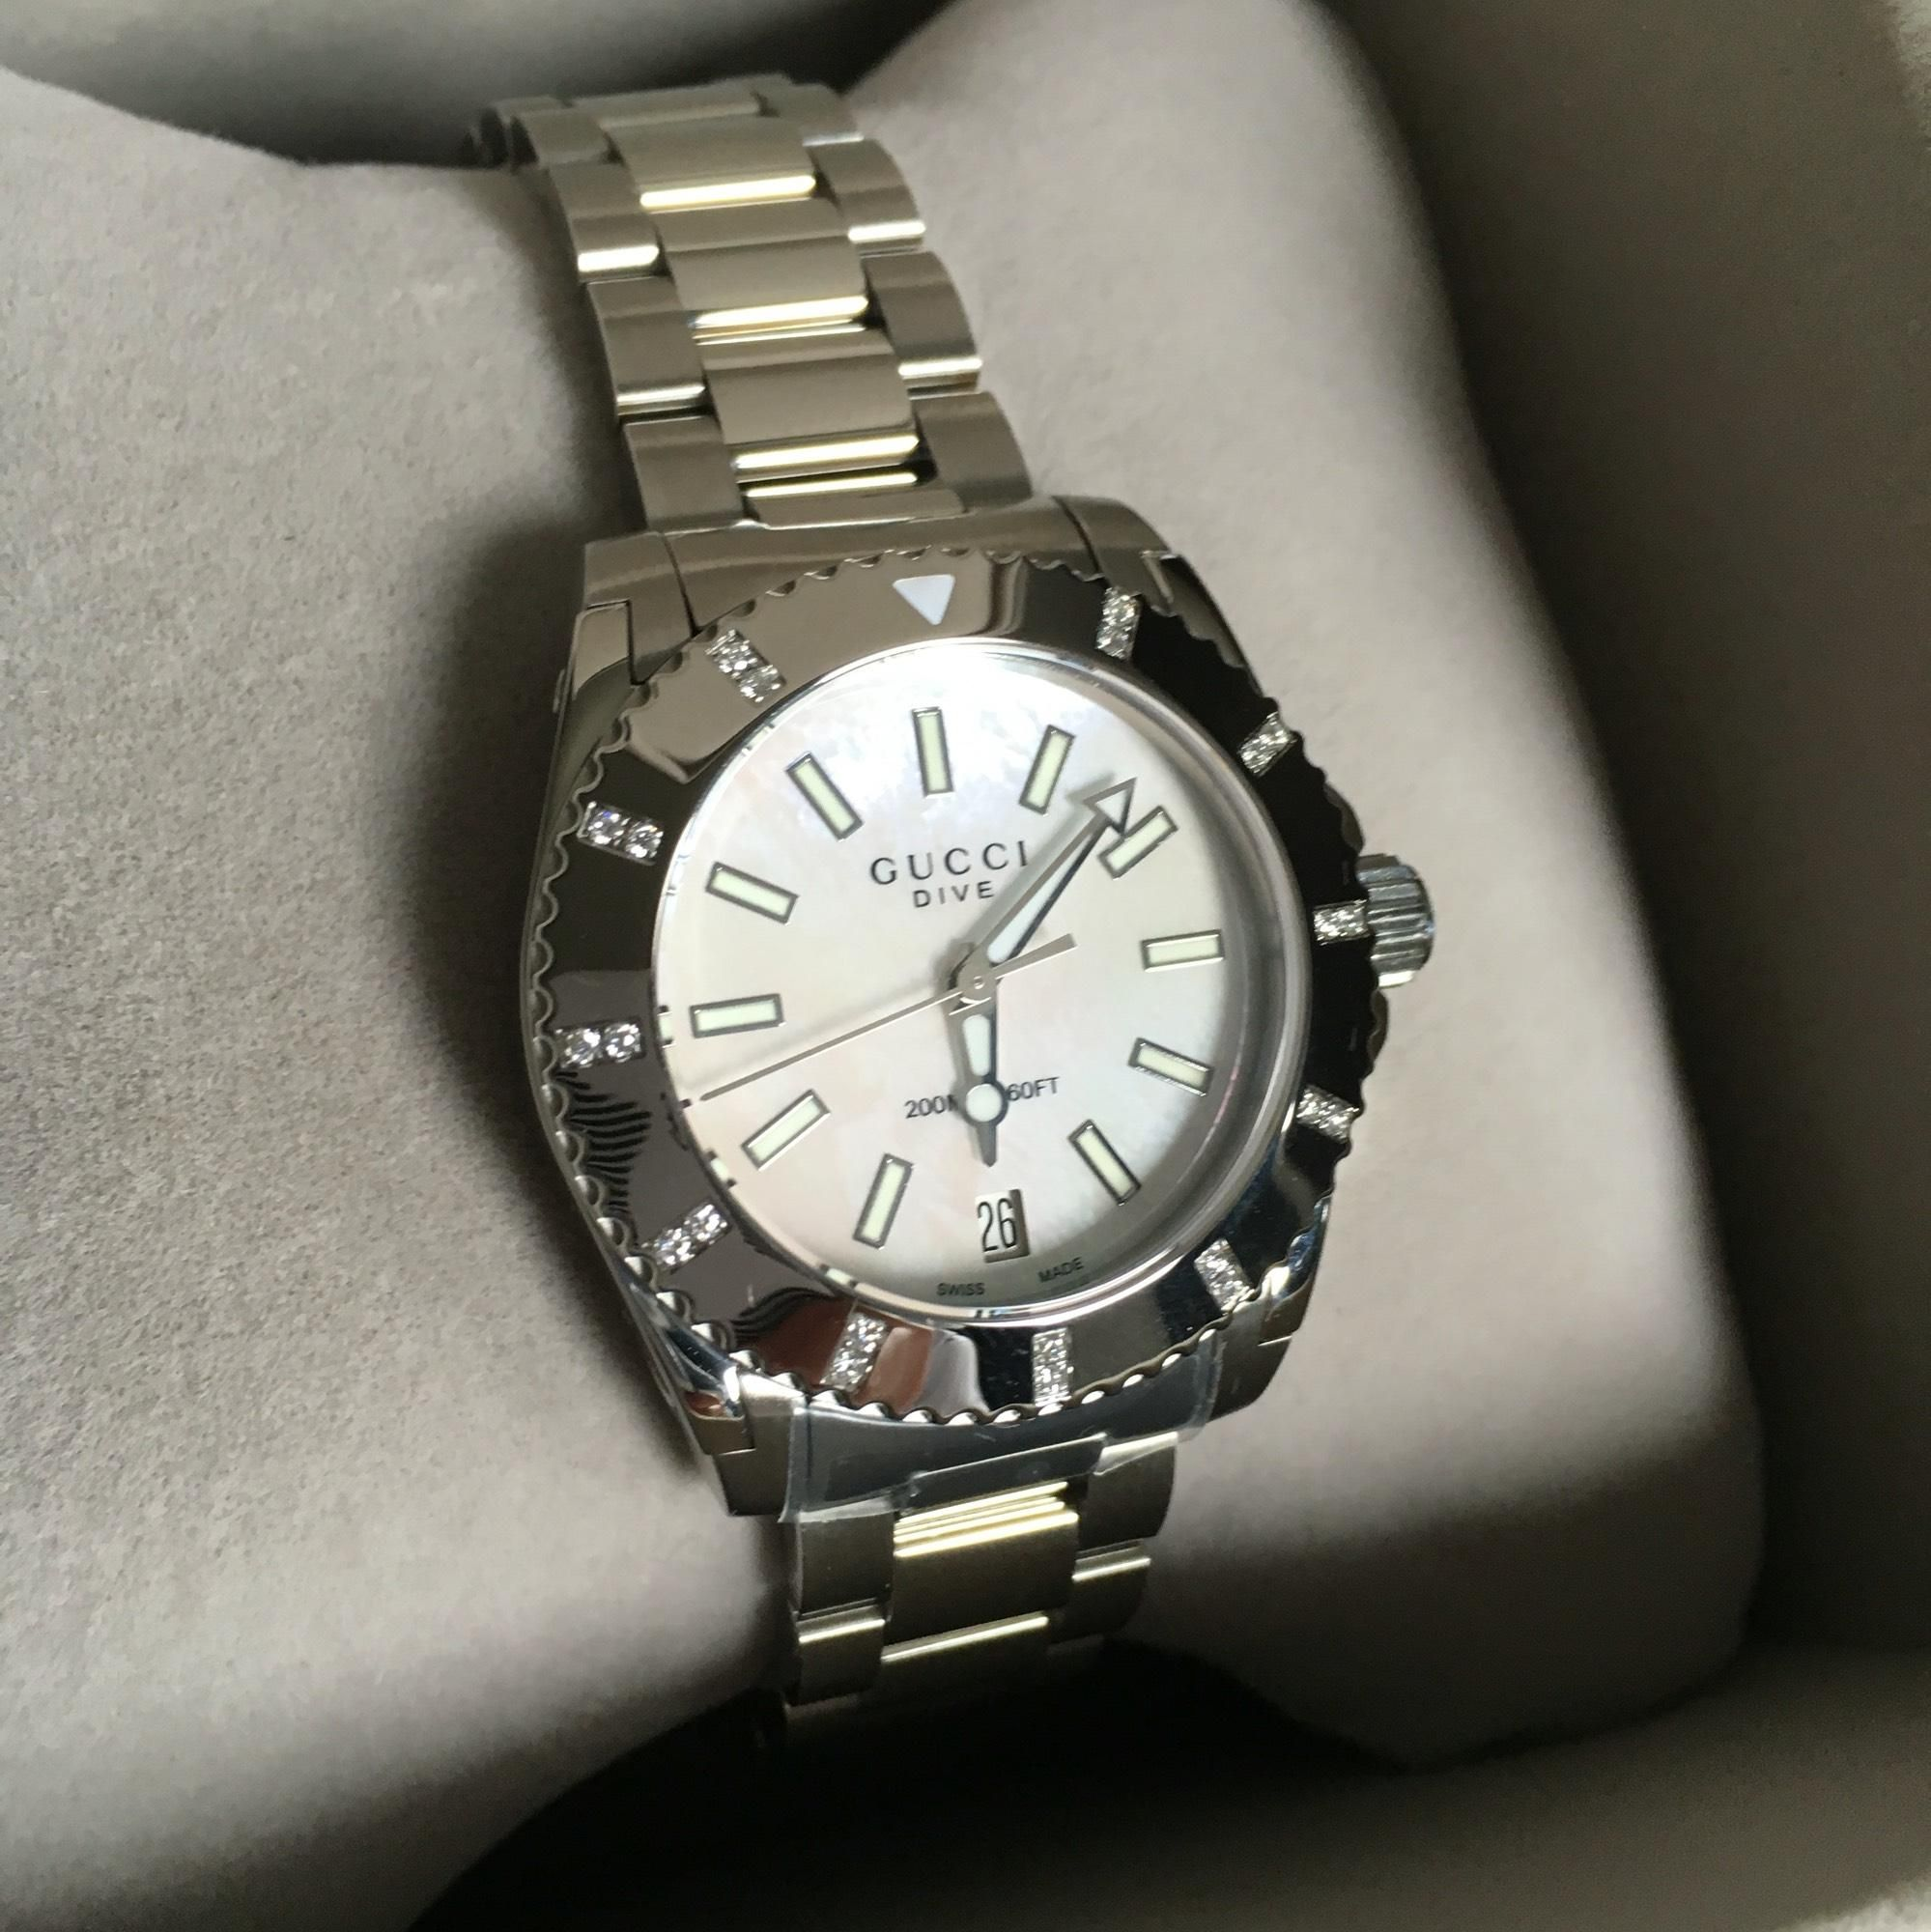 4ecf0860182 Free shipping and guaranteed authenticity on Gucci Women s Diamond Bezel  White Mother of Pearl Dive Watch at Tradesy. From the